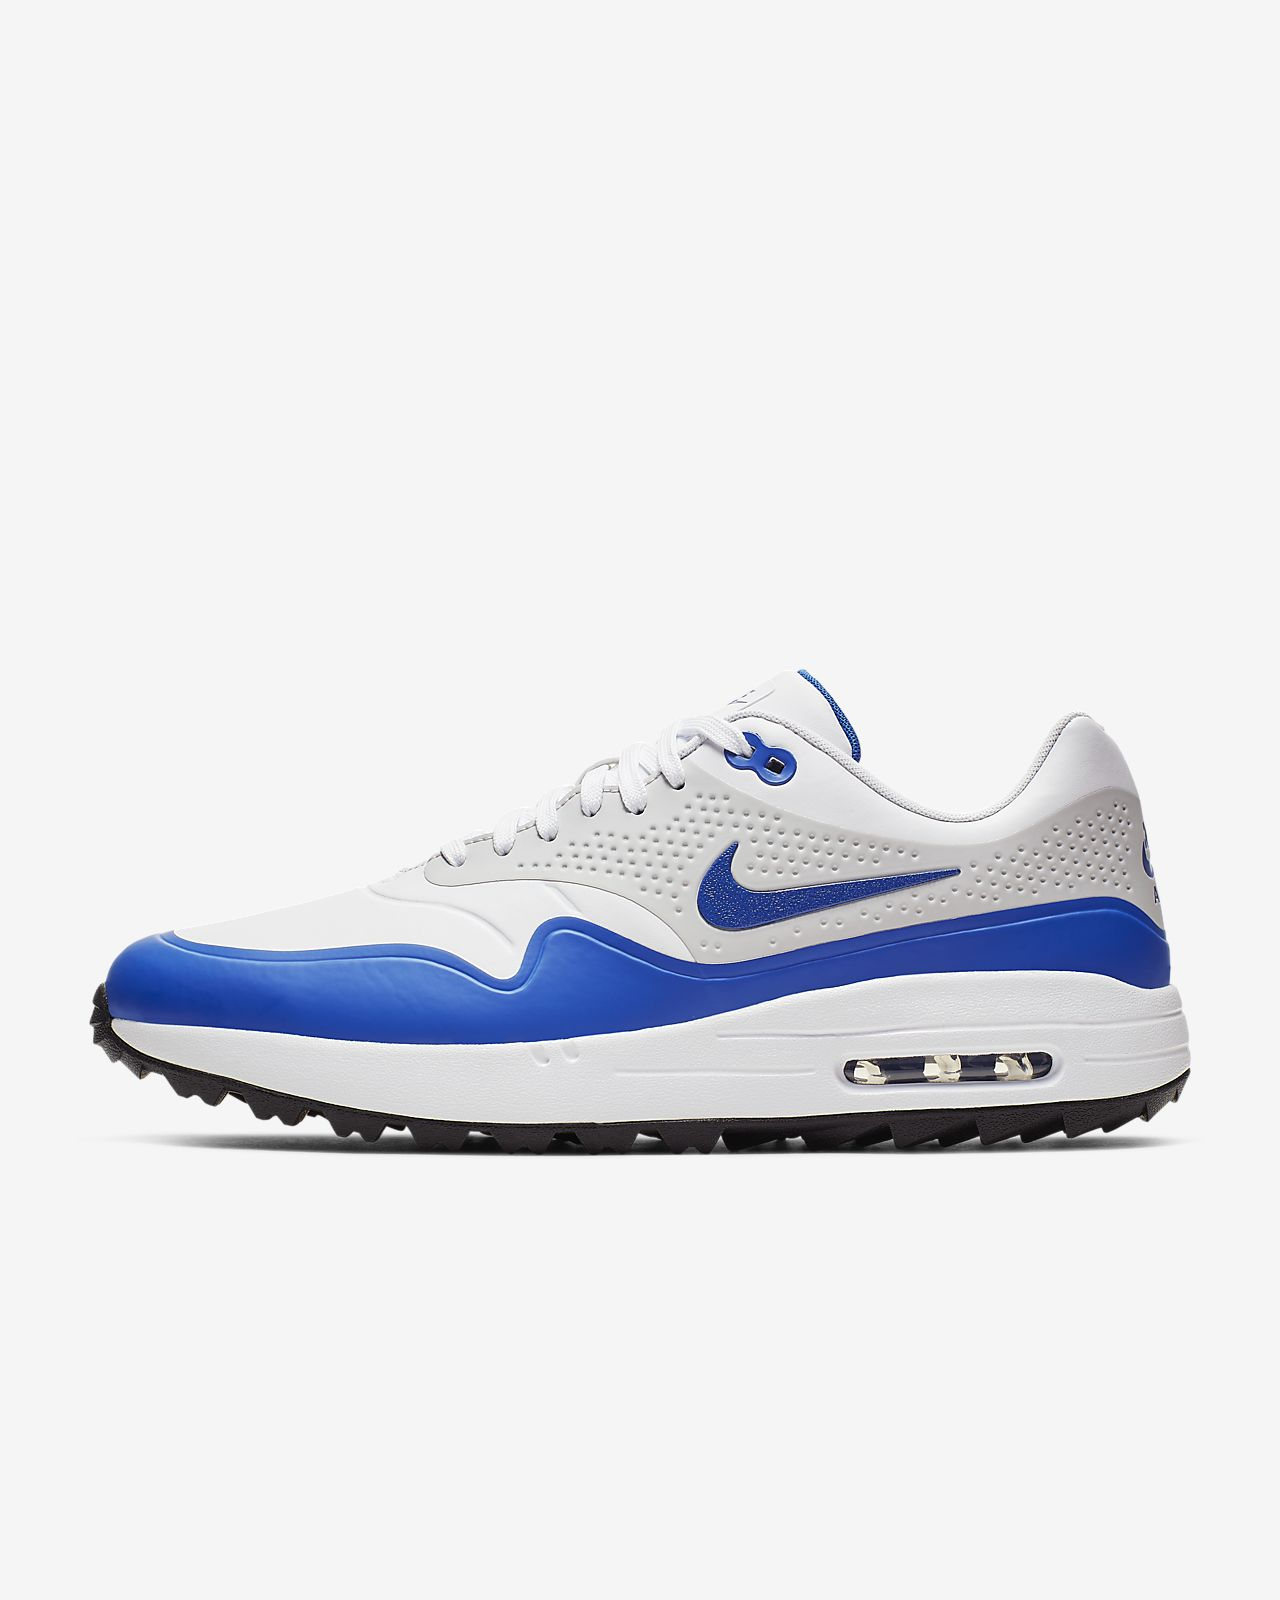 179a6def03 Nike Air Max 1 G Men's Golf Shoe. Nike.com